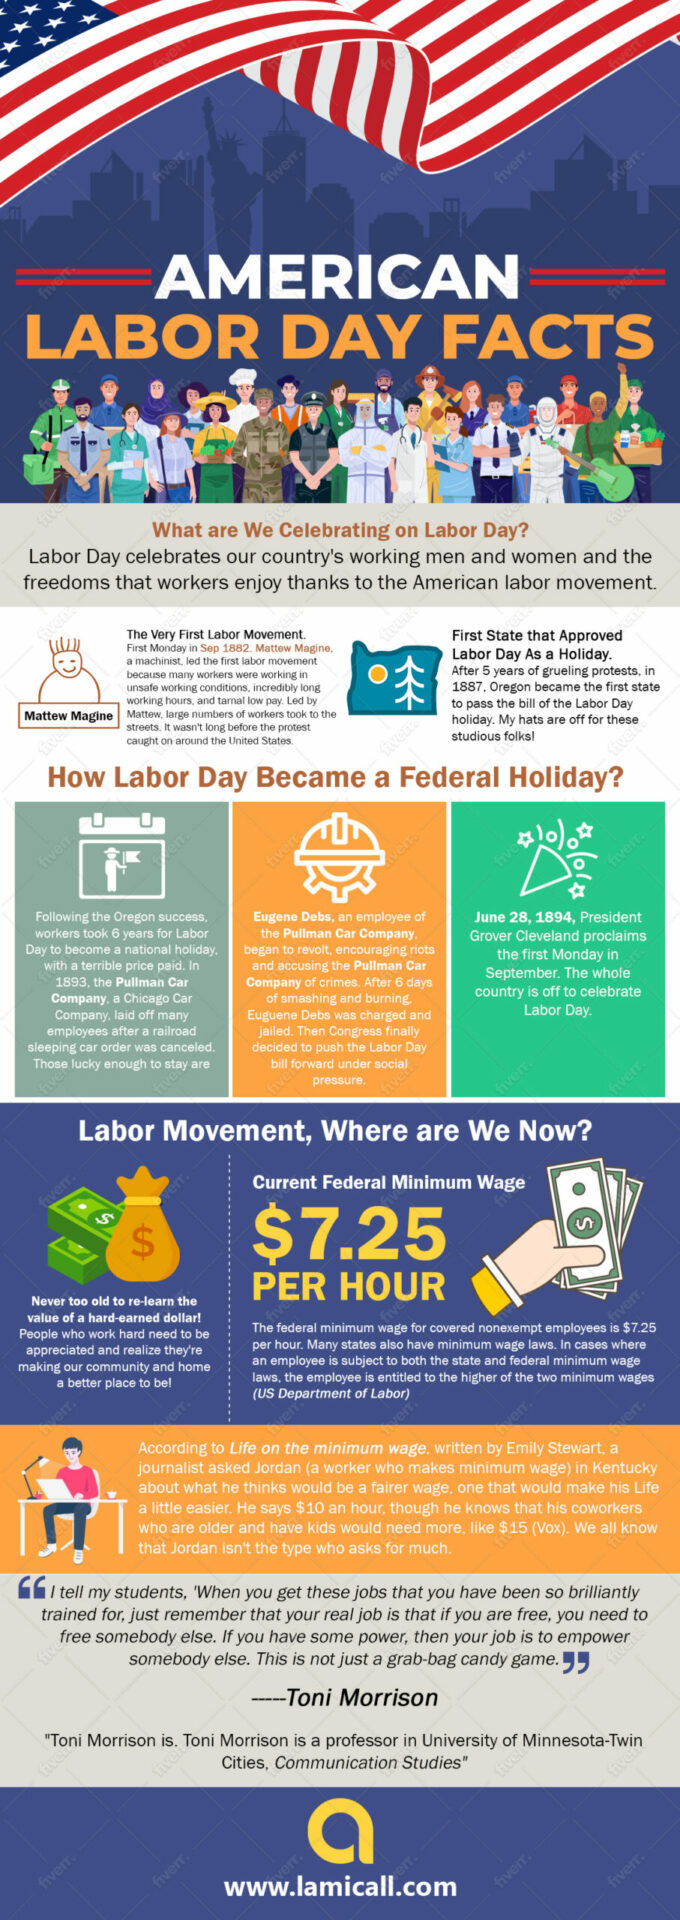 Labor Day History Powered by Lamicall